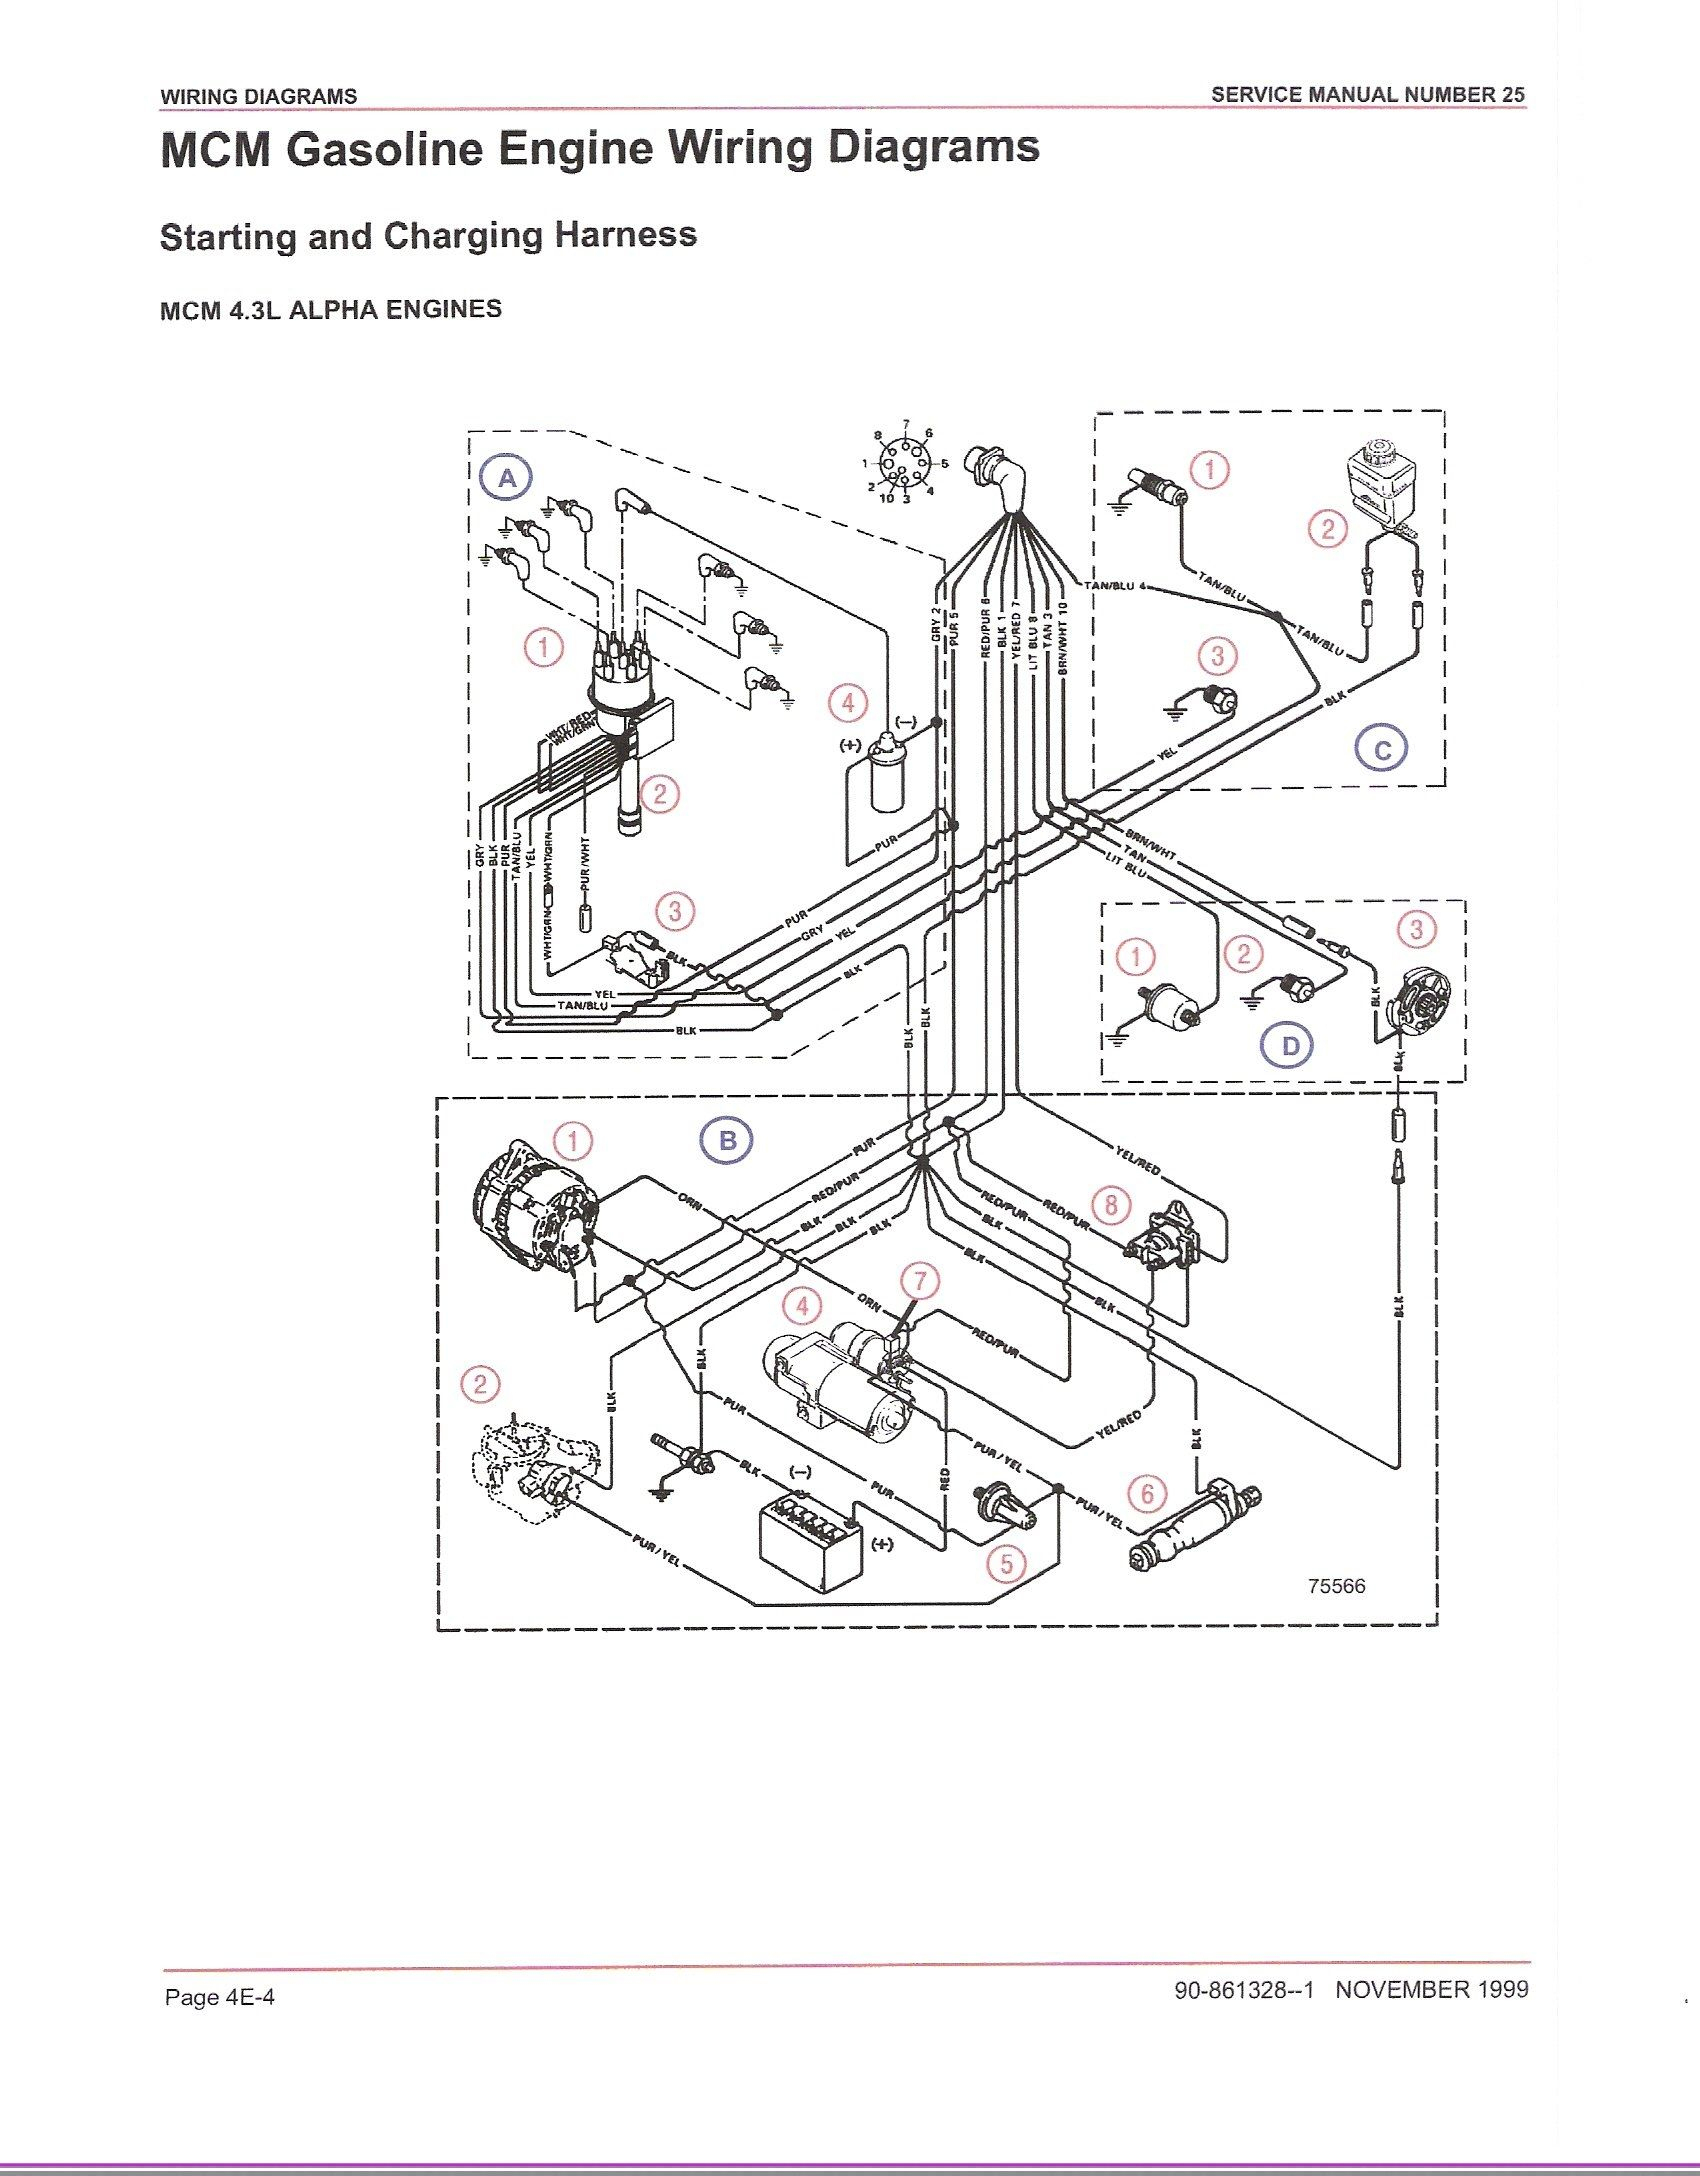 Mercury Thunderbolt Ignition Wiring Diagram - All Kind Of Wiring - Mercruiser Ignition Wiring Diagram